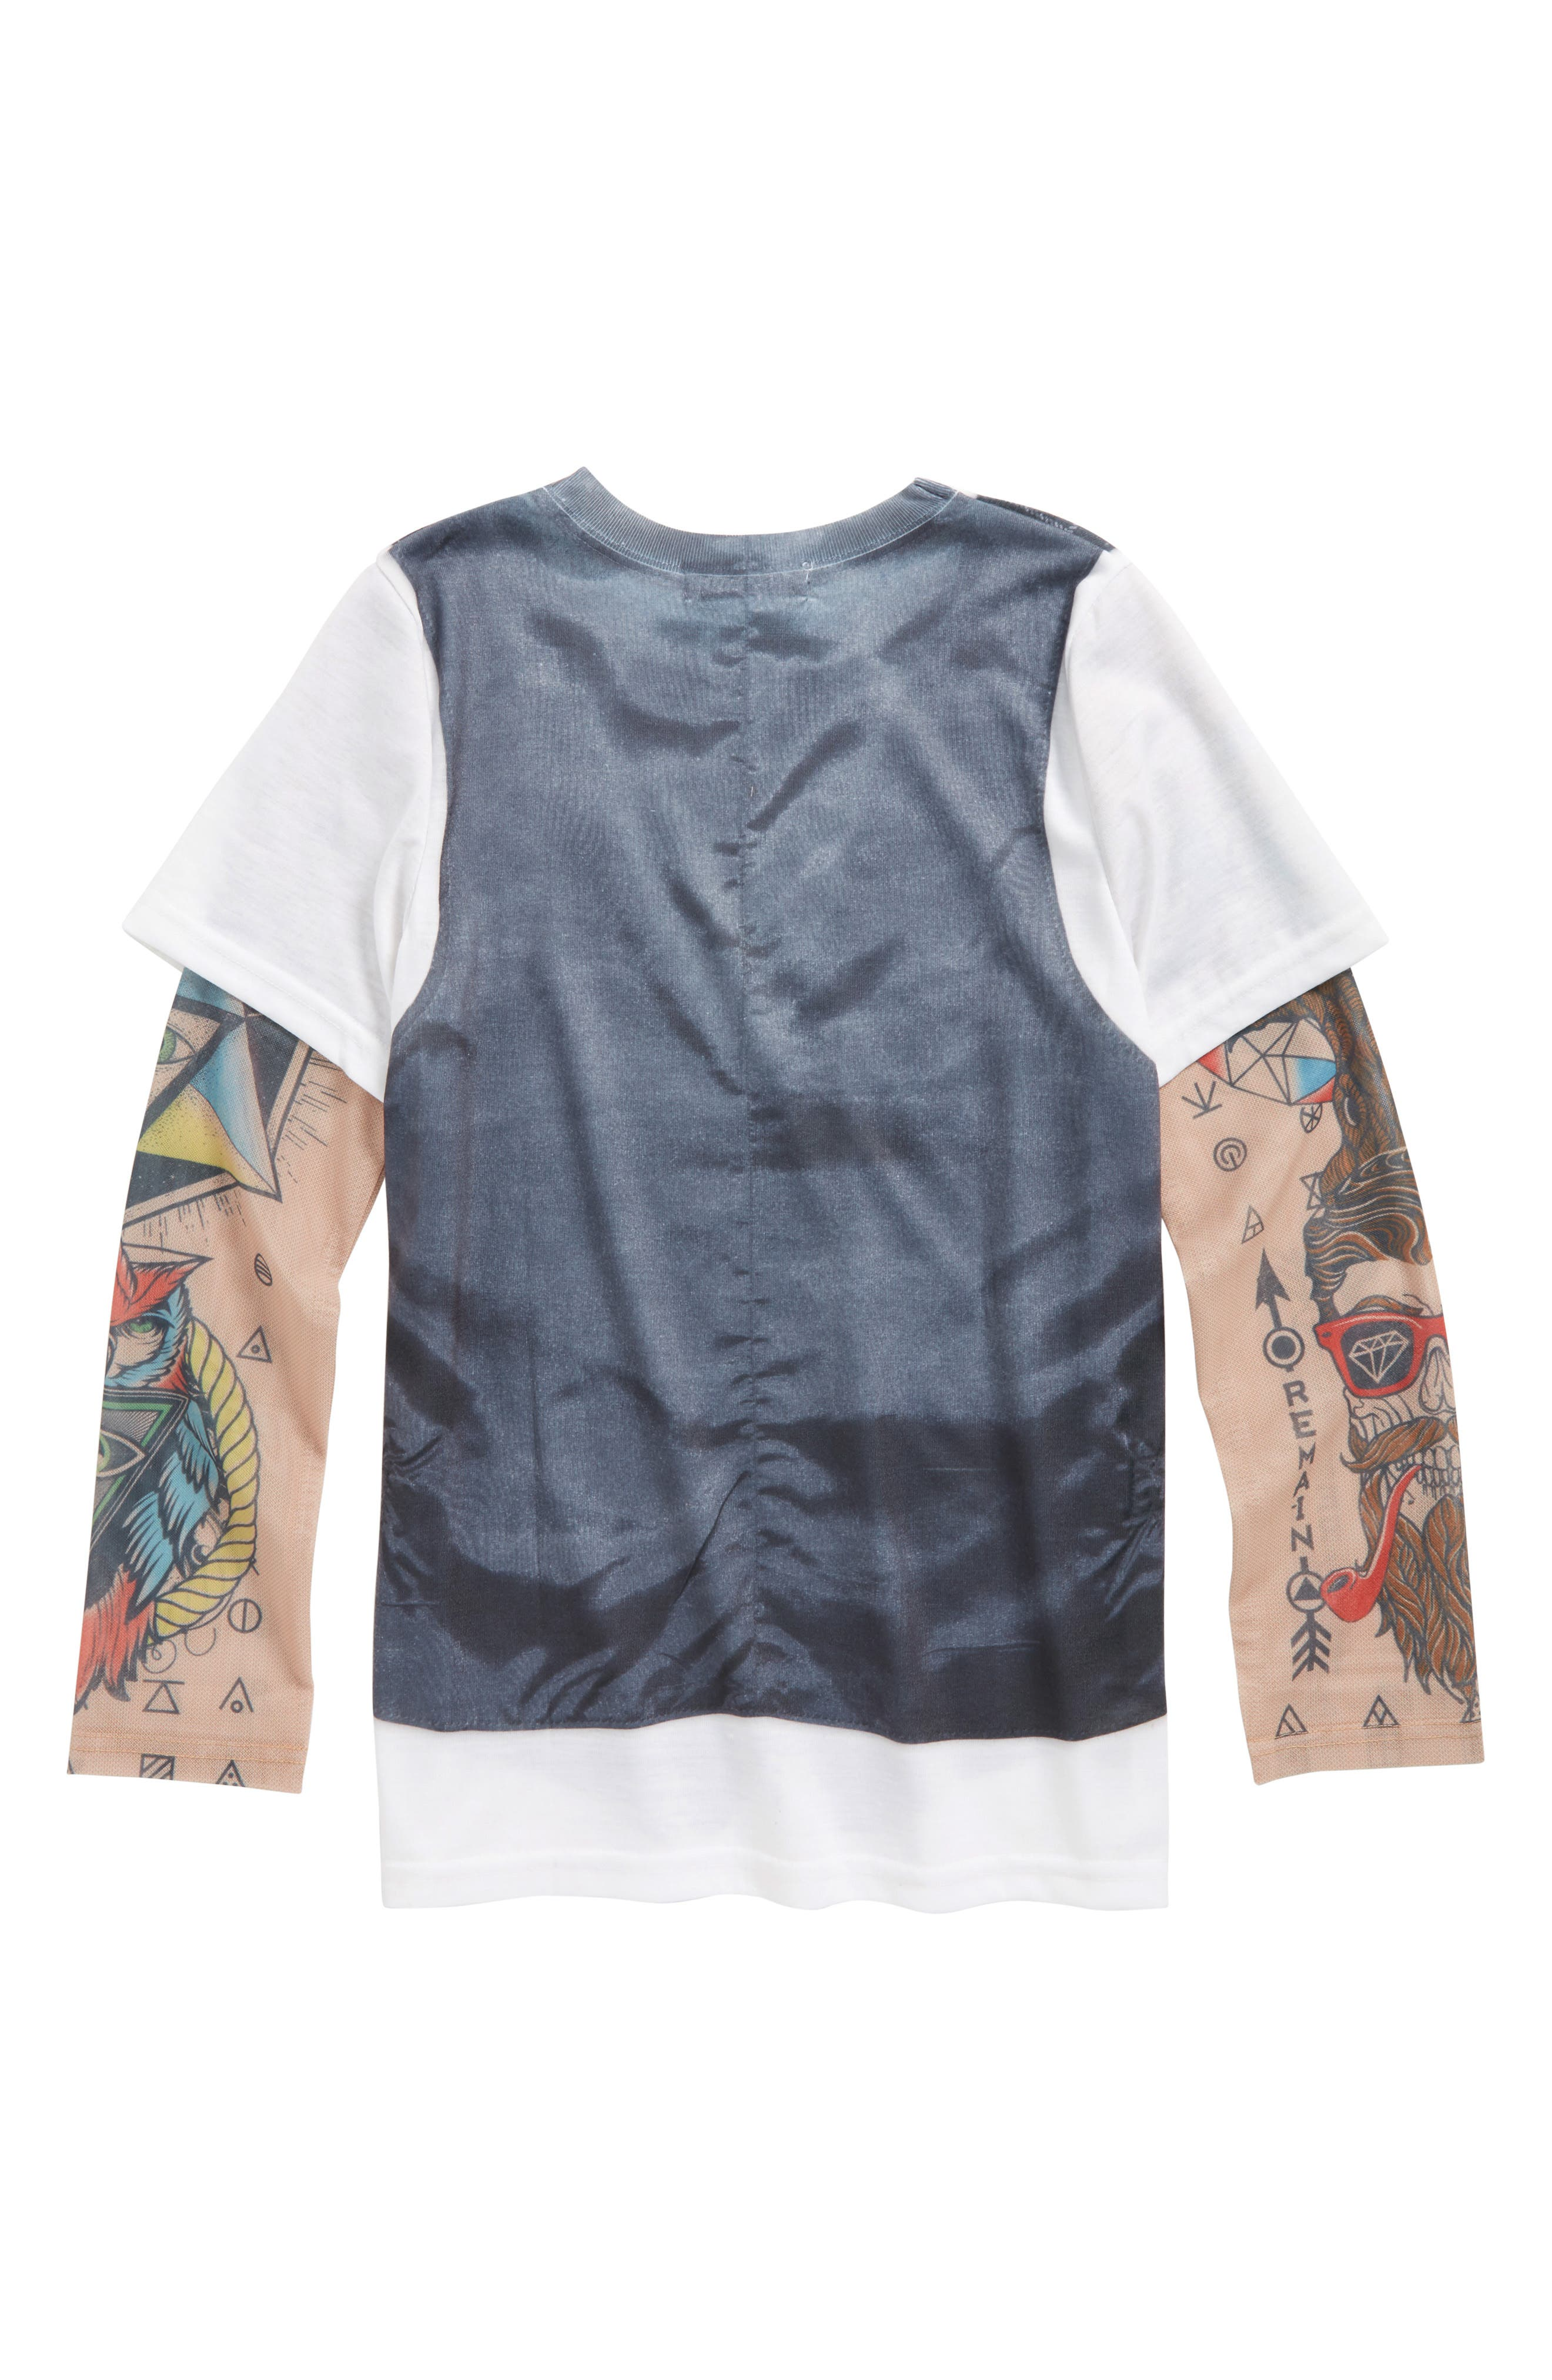 Hipster Vest & Bow Tie T-Shirt with Tattoo Sleeves,                             Alternate thumbnail 2, color,